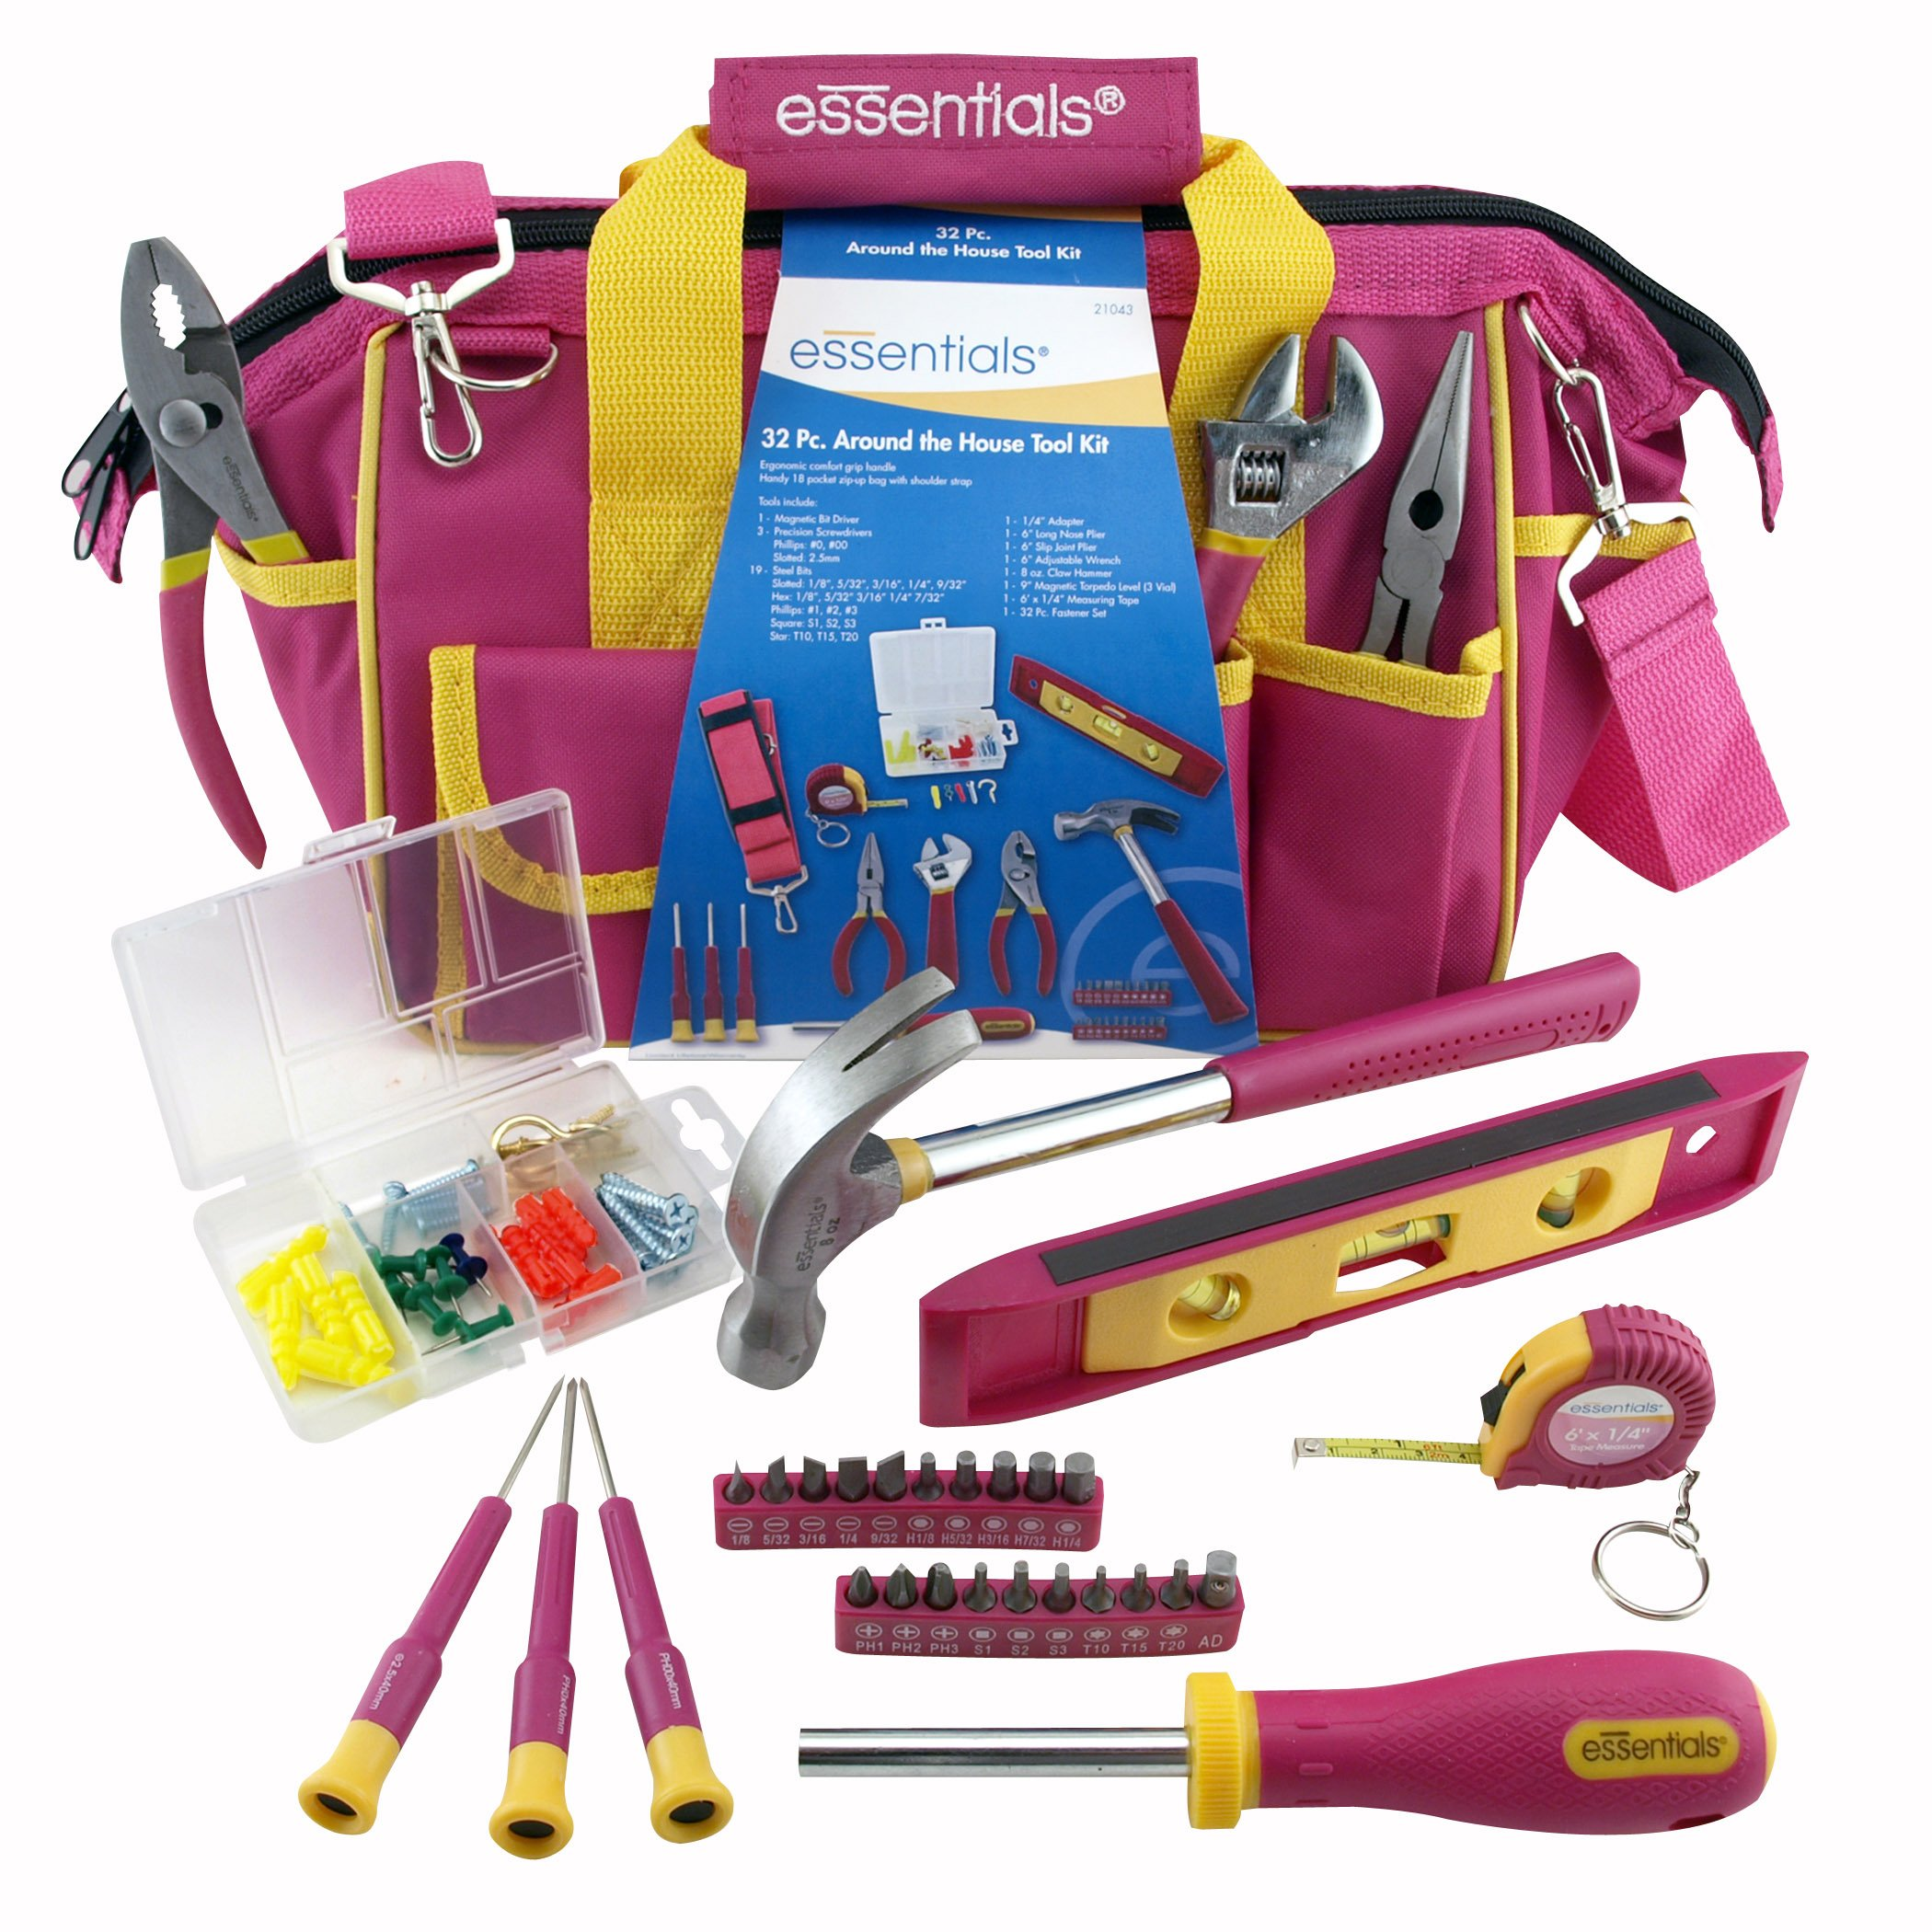 GreatNeck 21043 32-Piece Essentials Around the House Tool Set in Pink Bag